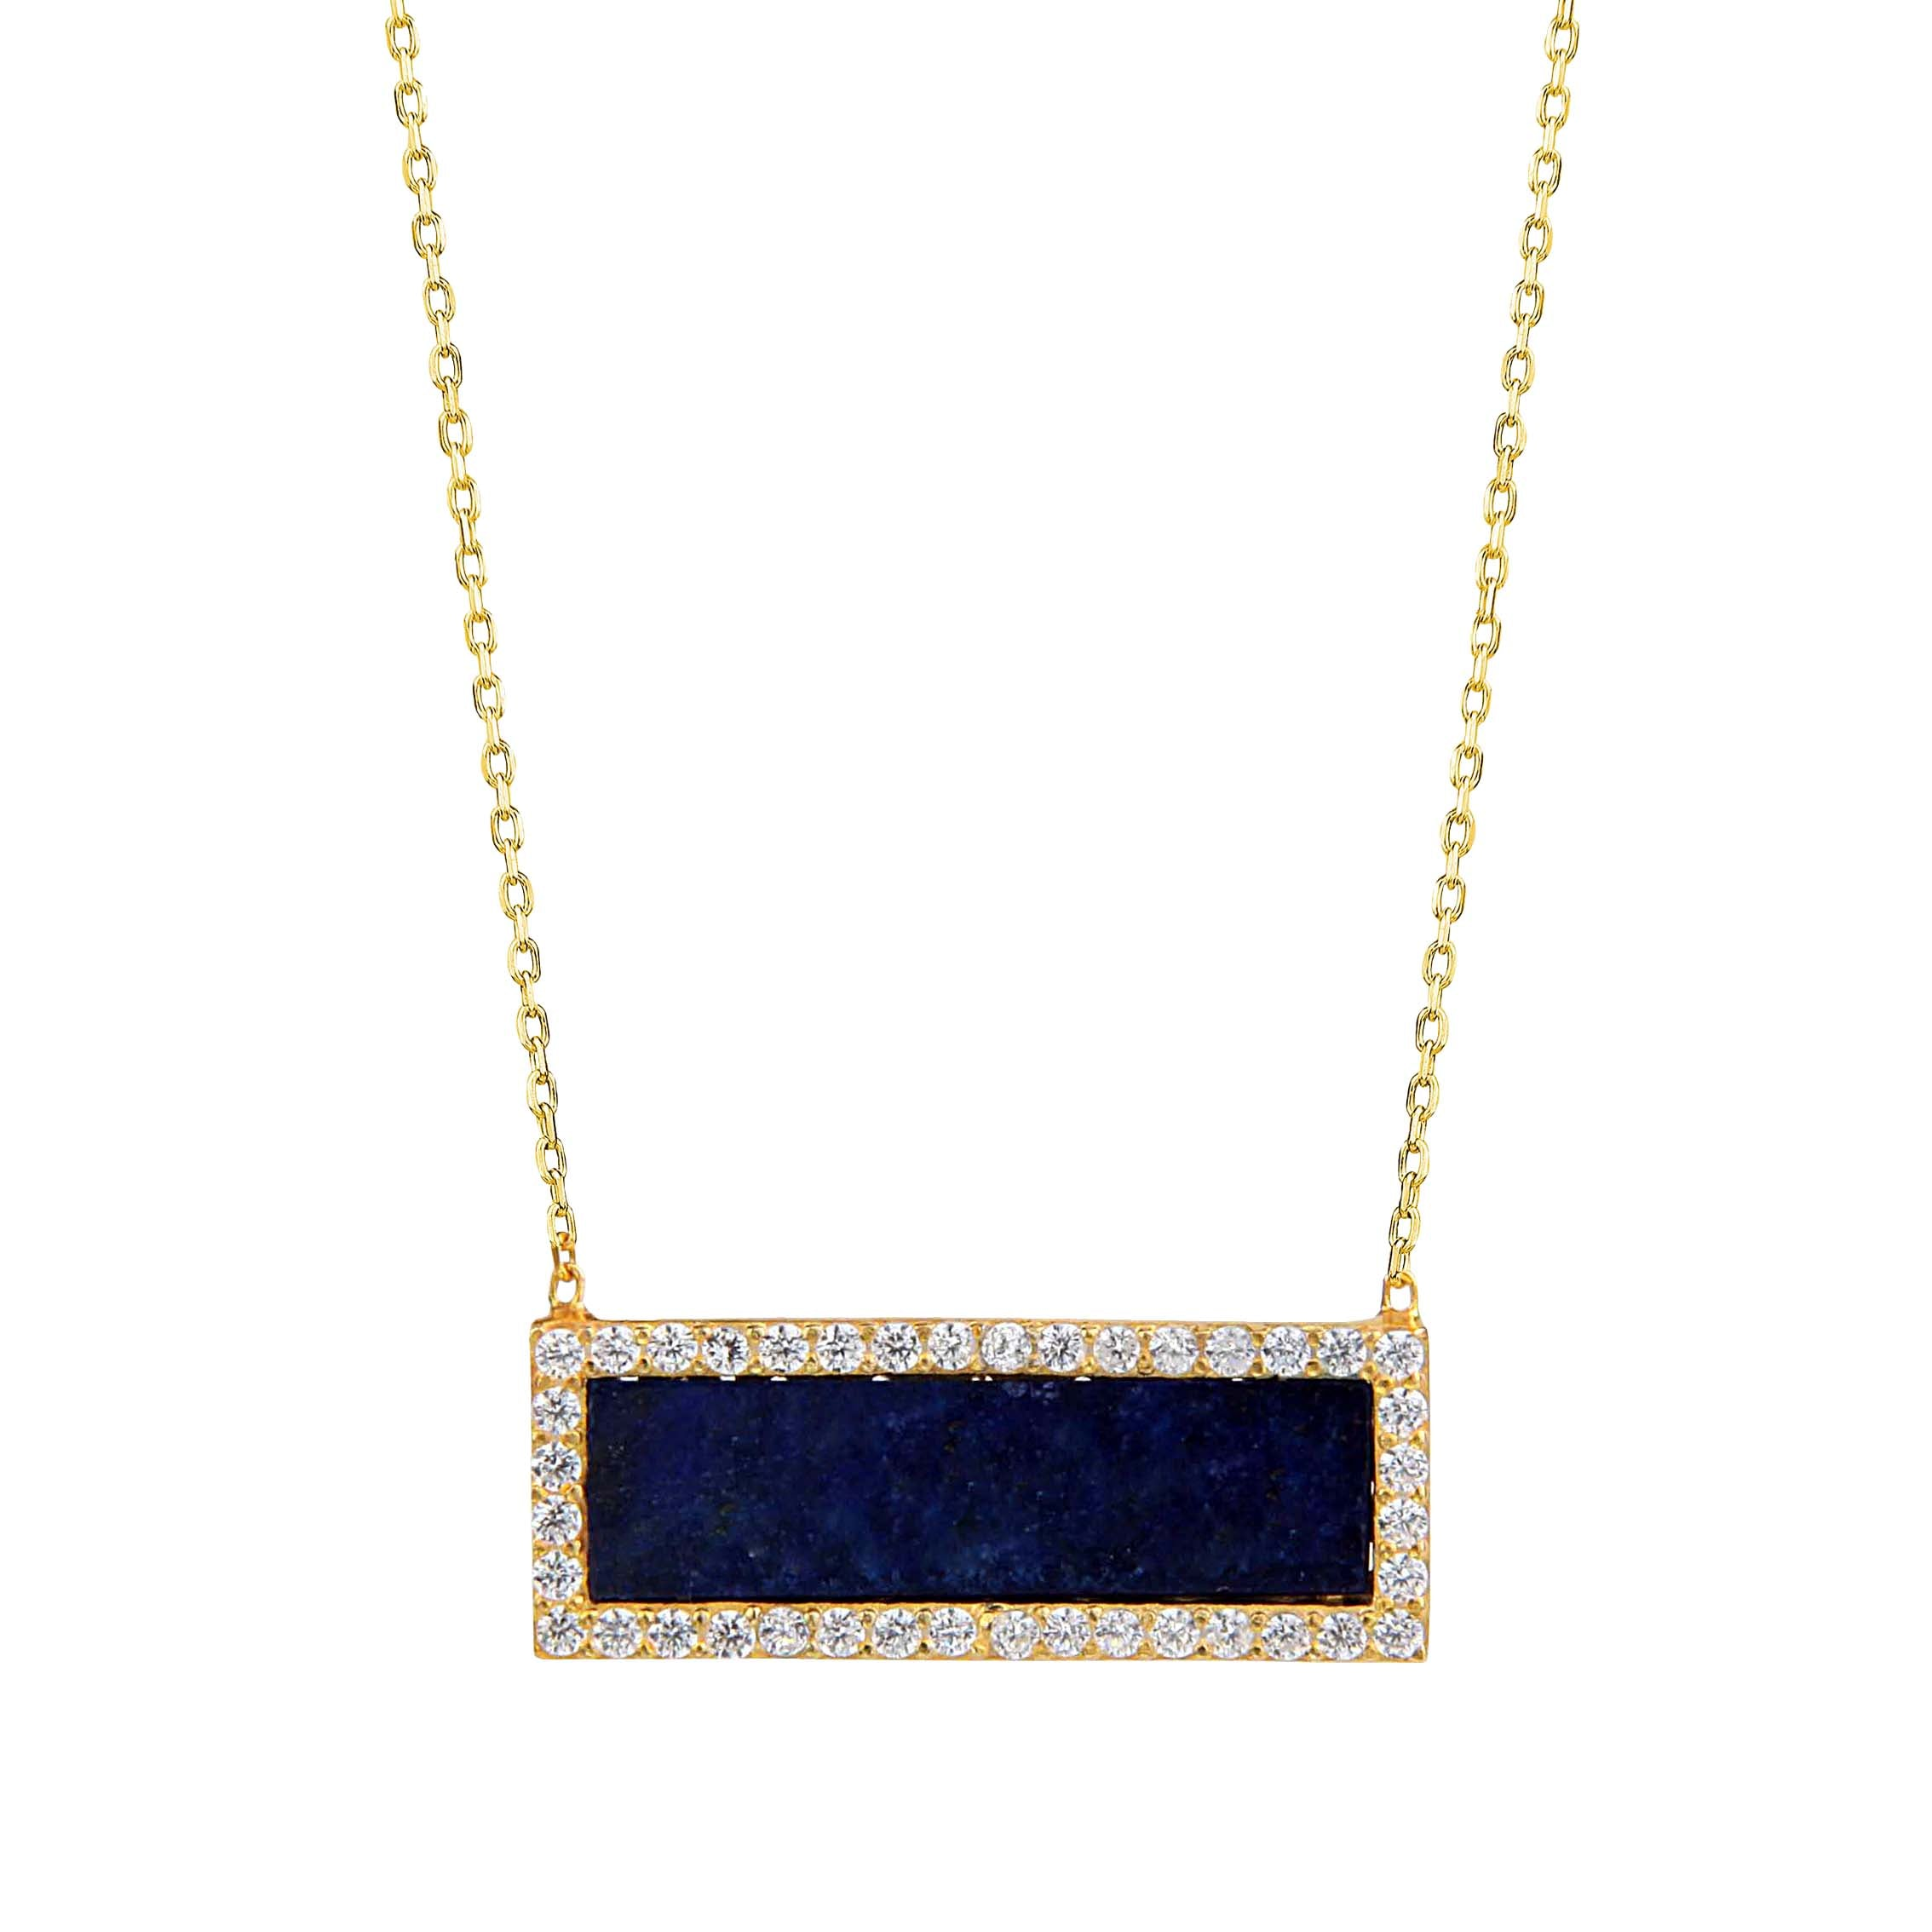 INLAID BAR NECKLACE - The Firestone Collection - Fashion Jewelry & Accessories